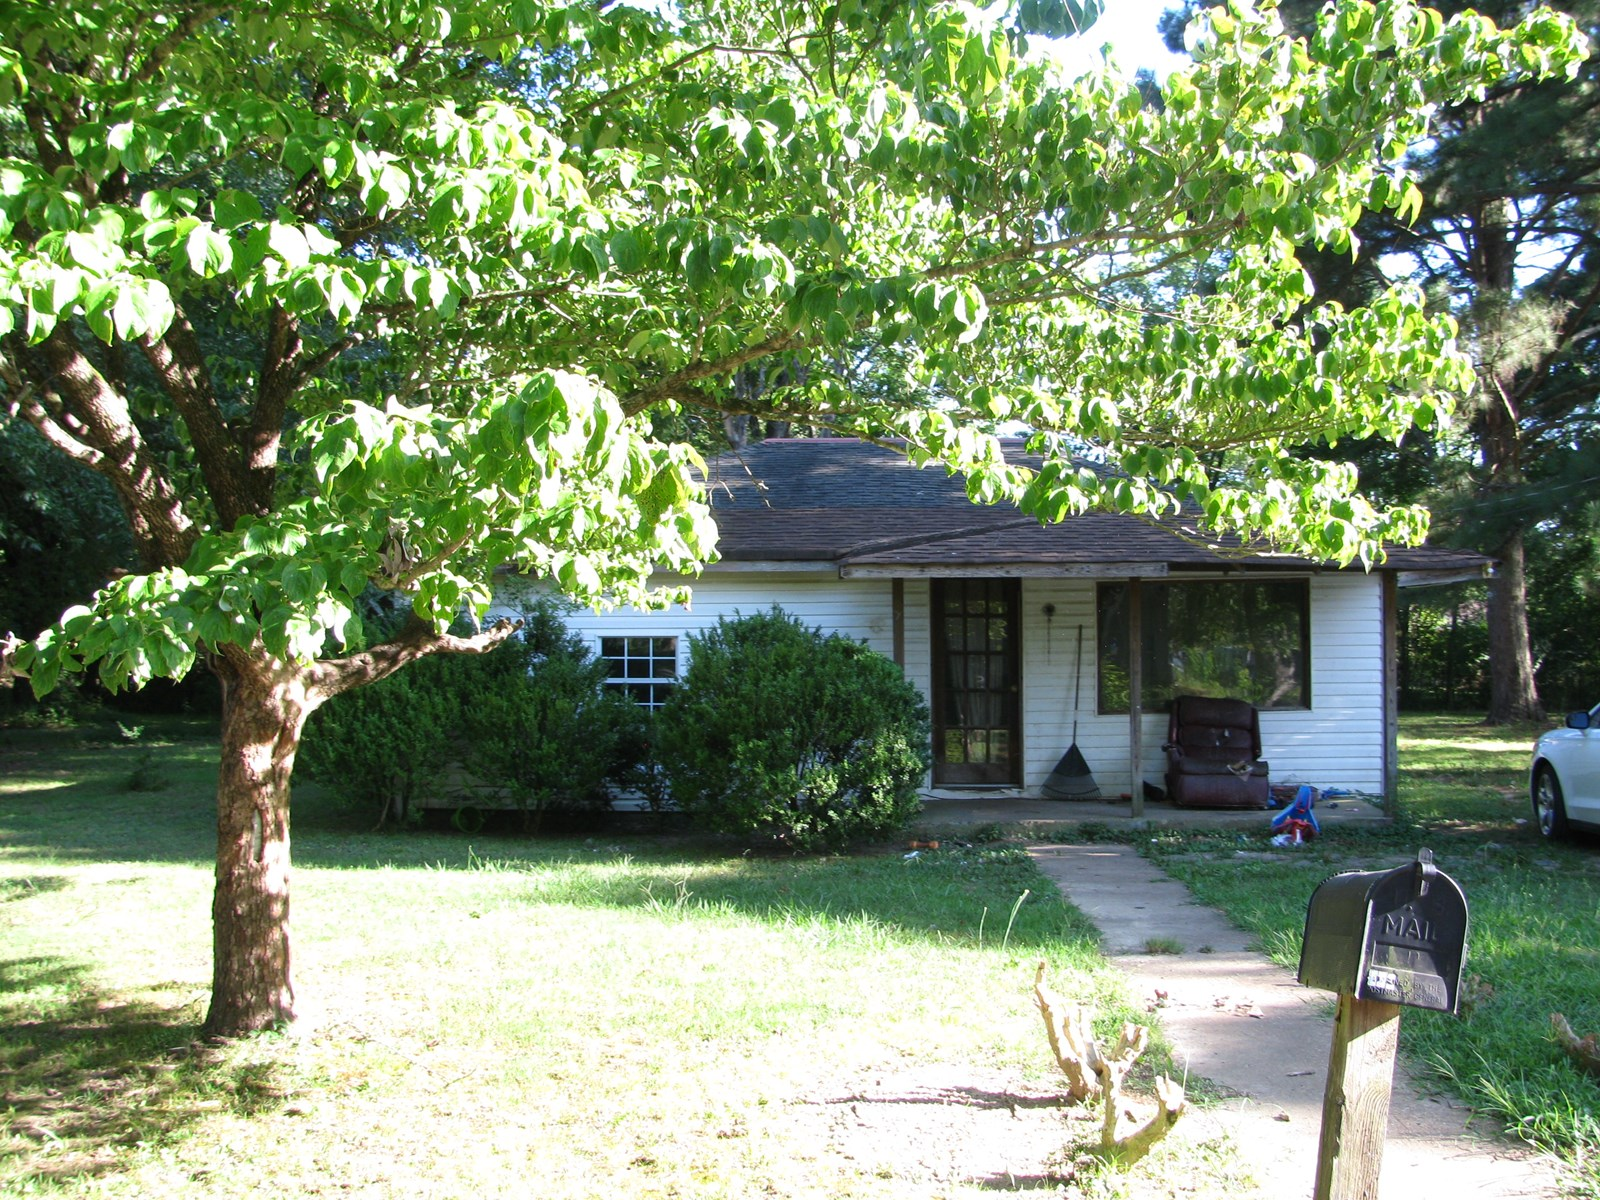 RENT HOUSE FOR SALE IN SAVANNAH, TN, OLDER HOME